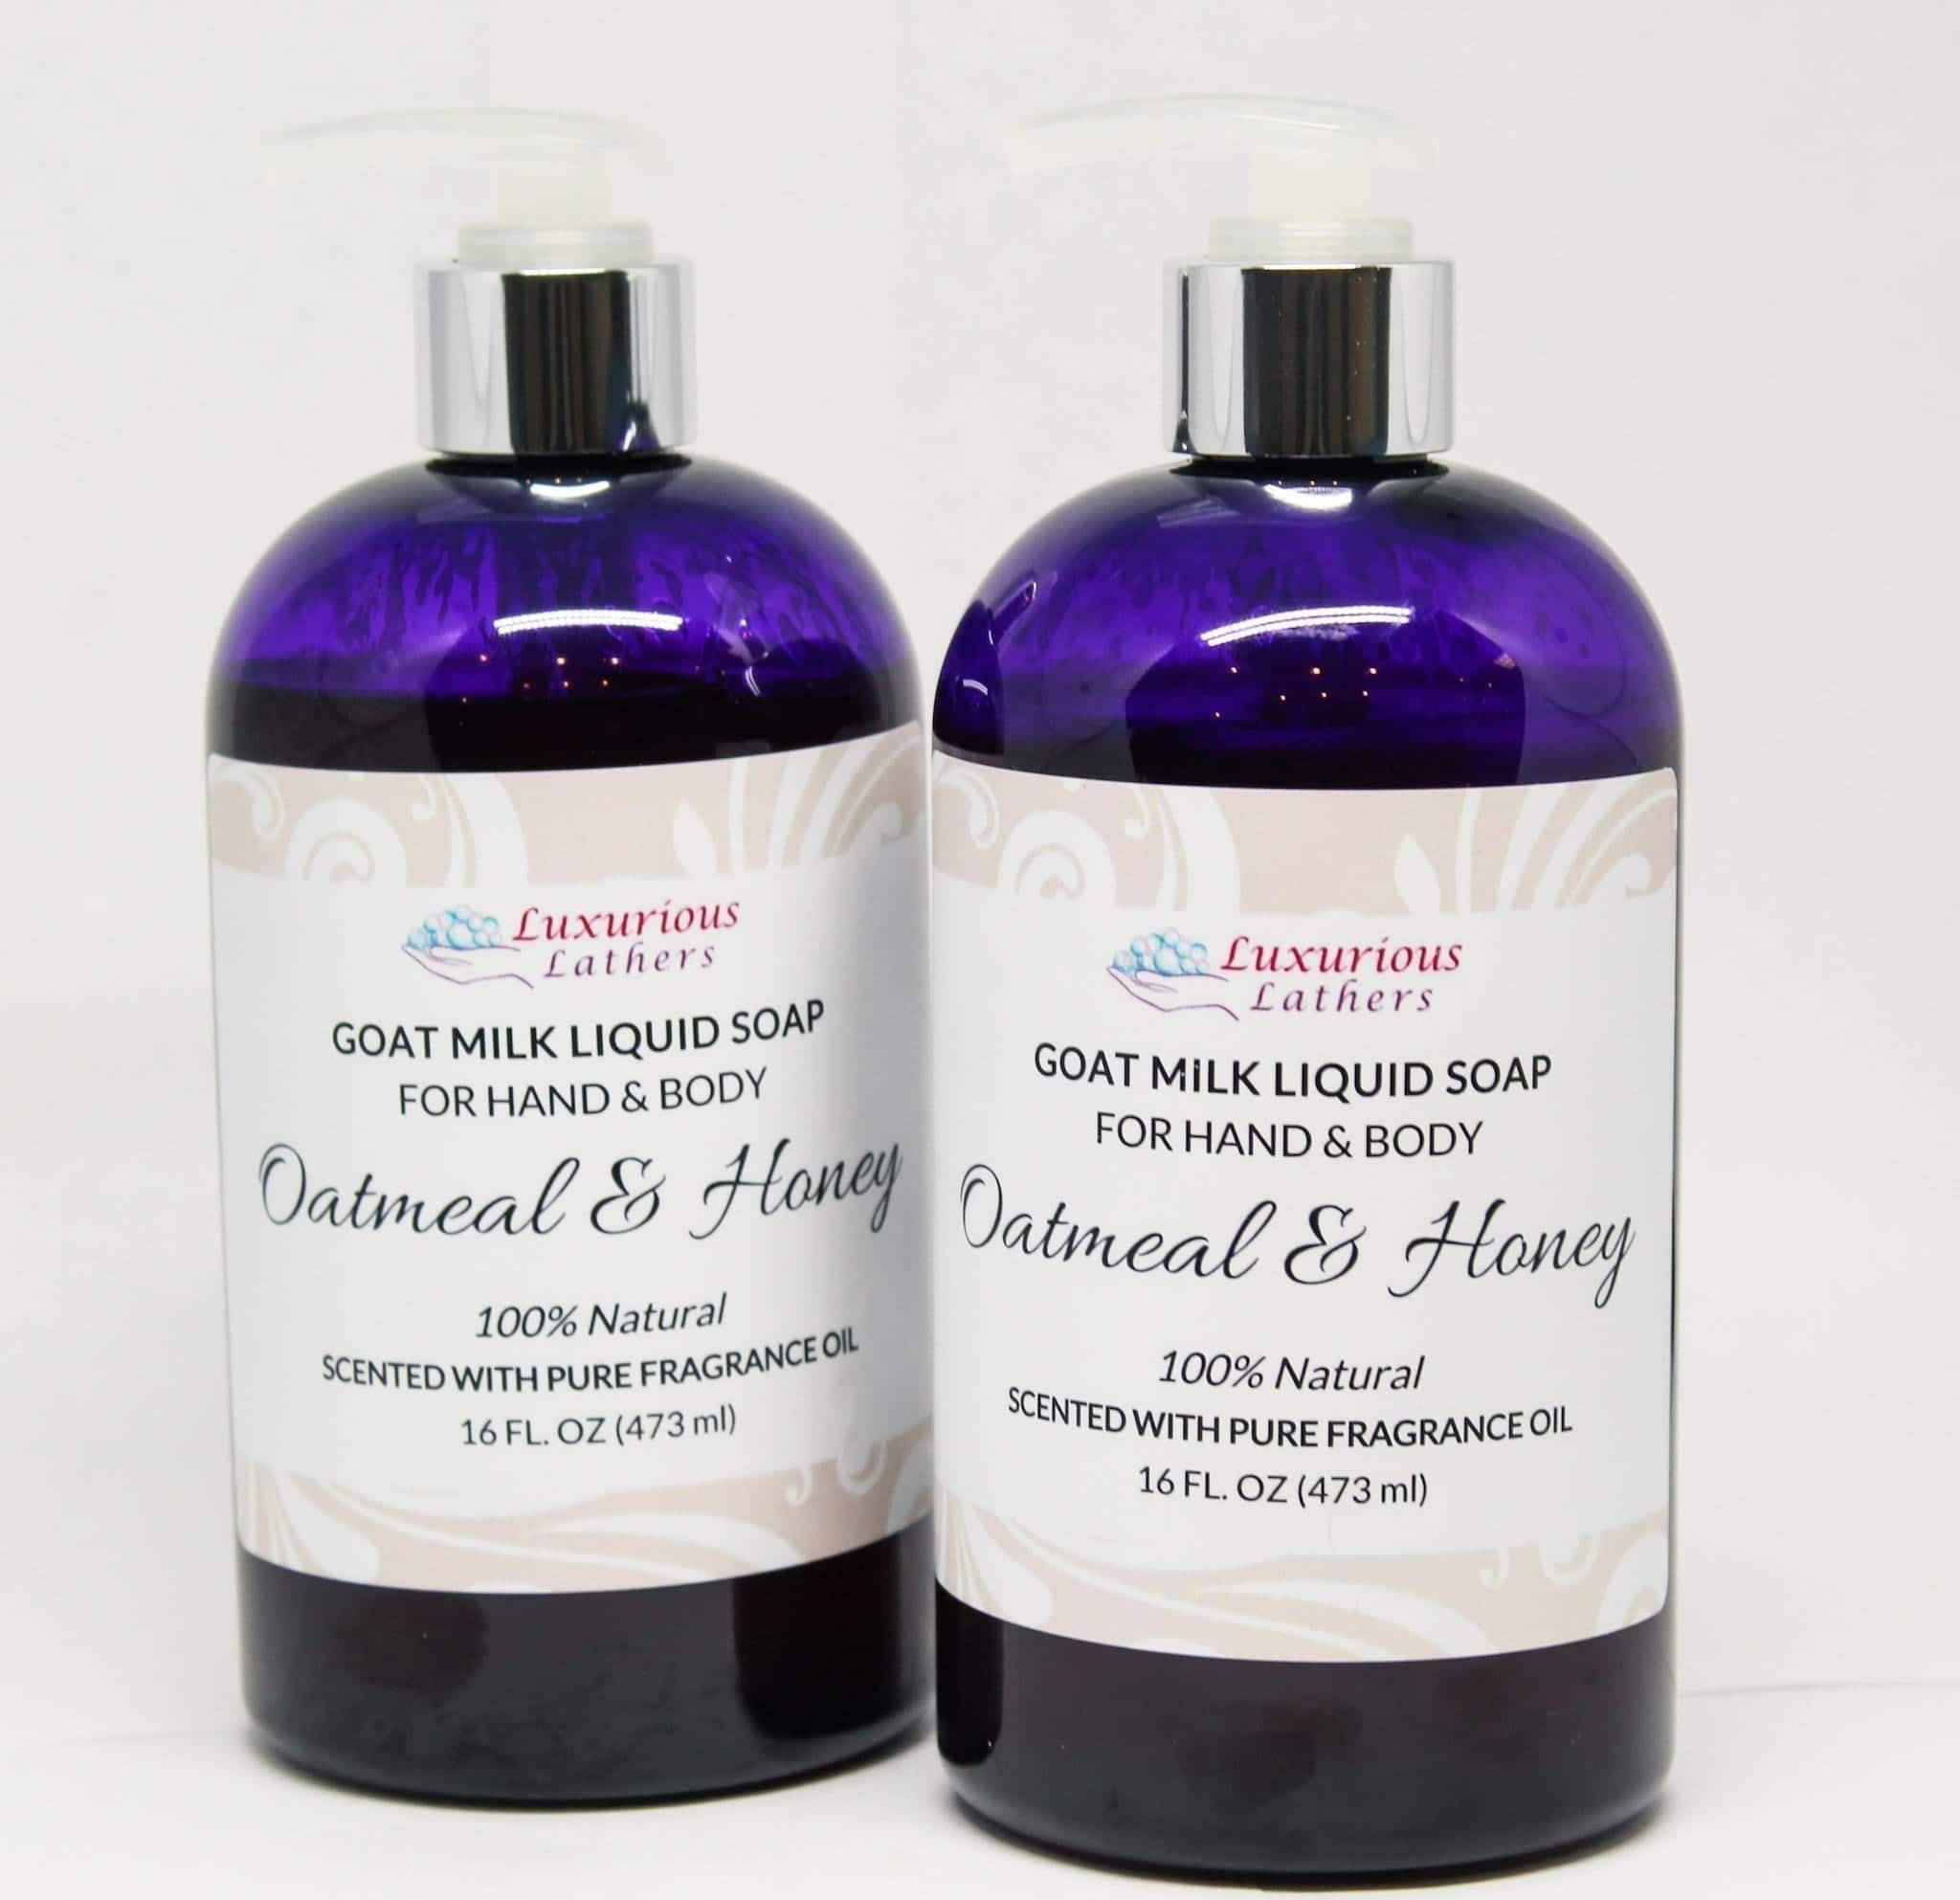 Oatmeal & Honey Goat Milk Liquid Soap